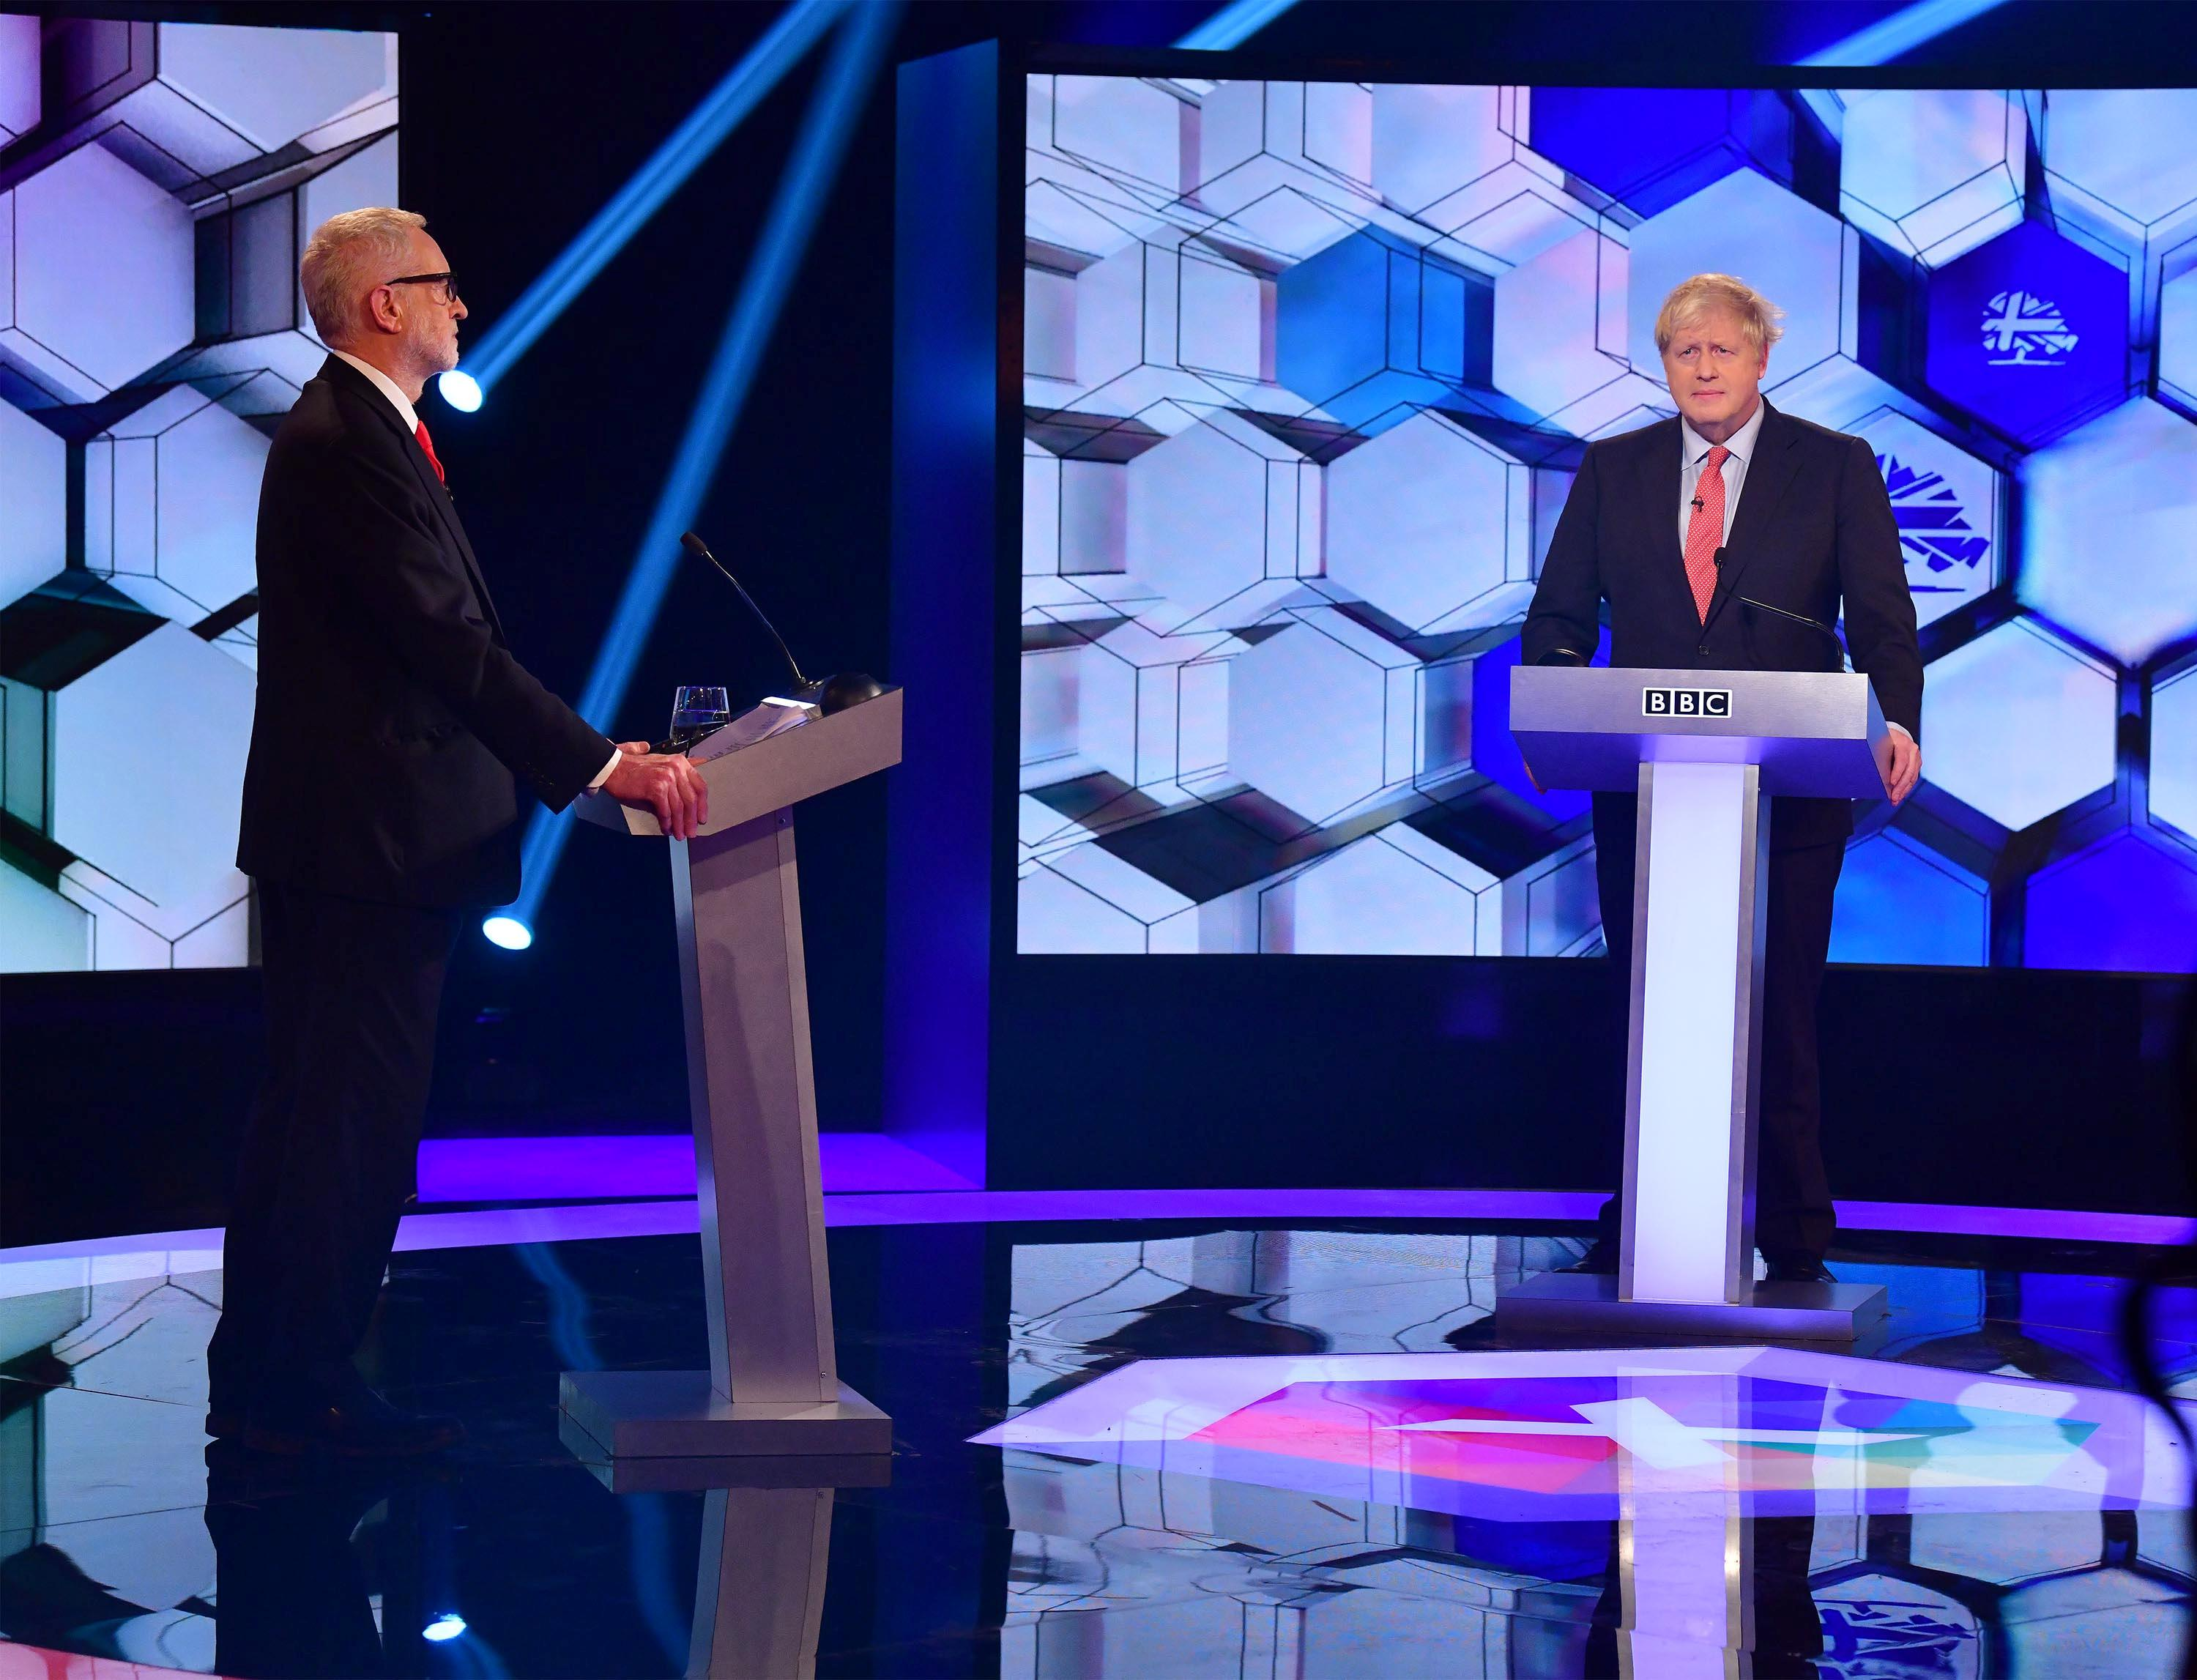 Johnson, Corbyn wage Brexit battle in final debate before UK election